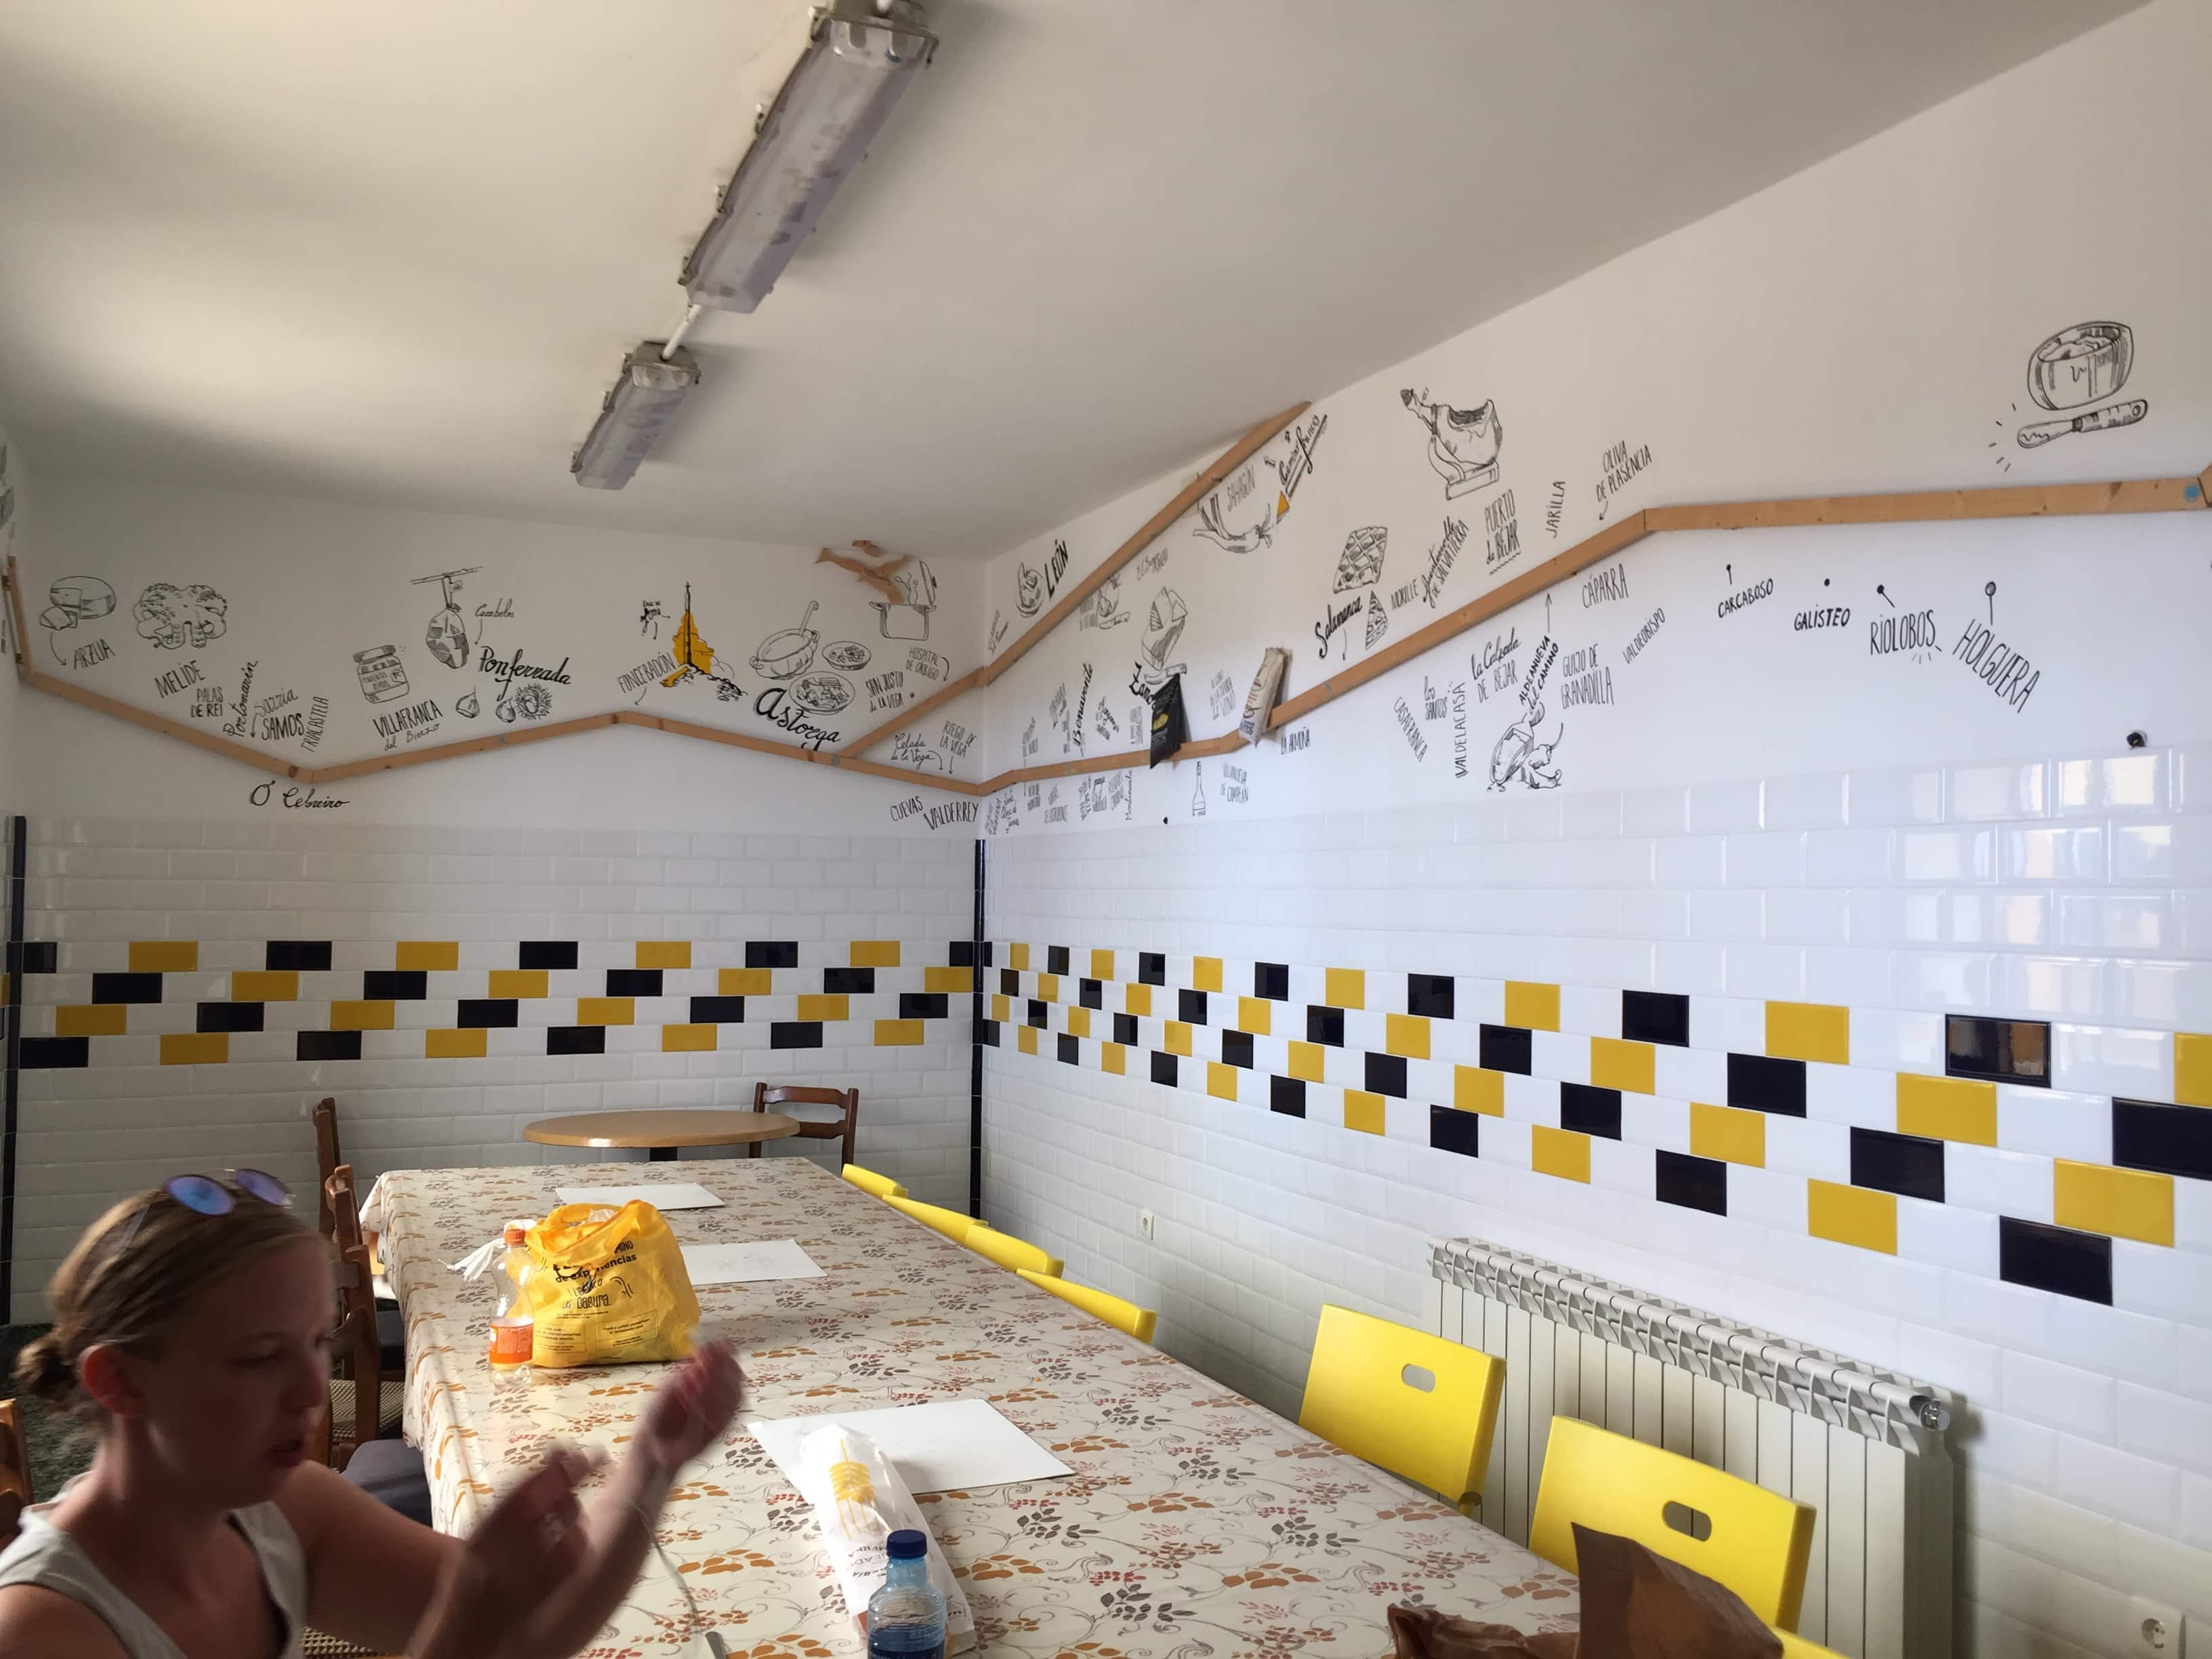 Cool designs on the wall for the Camino